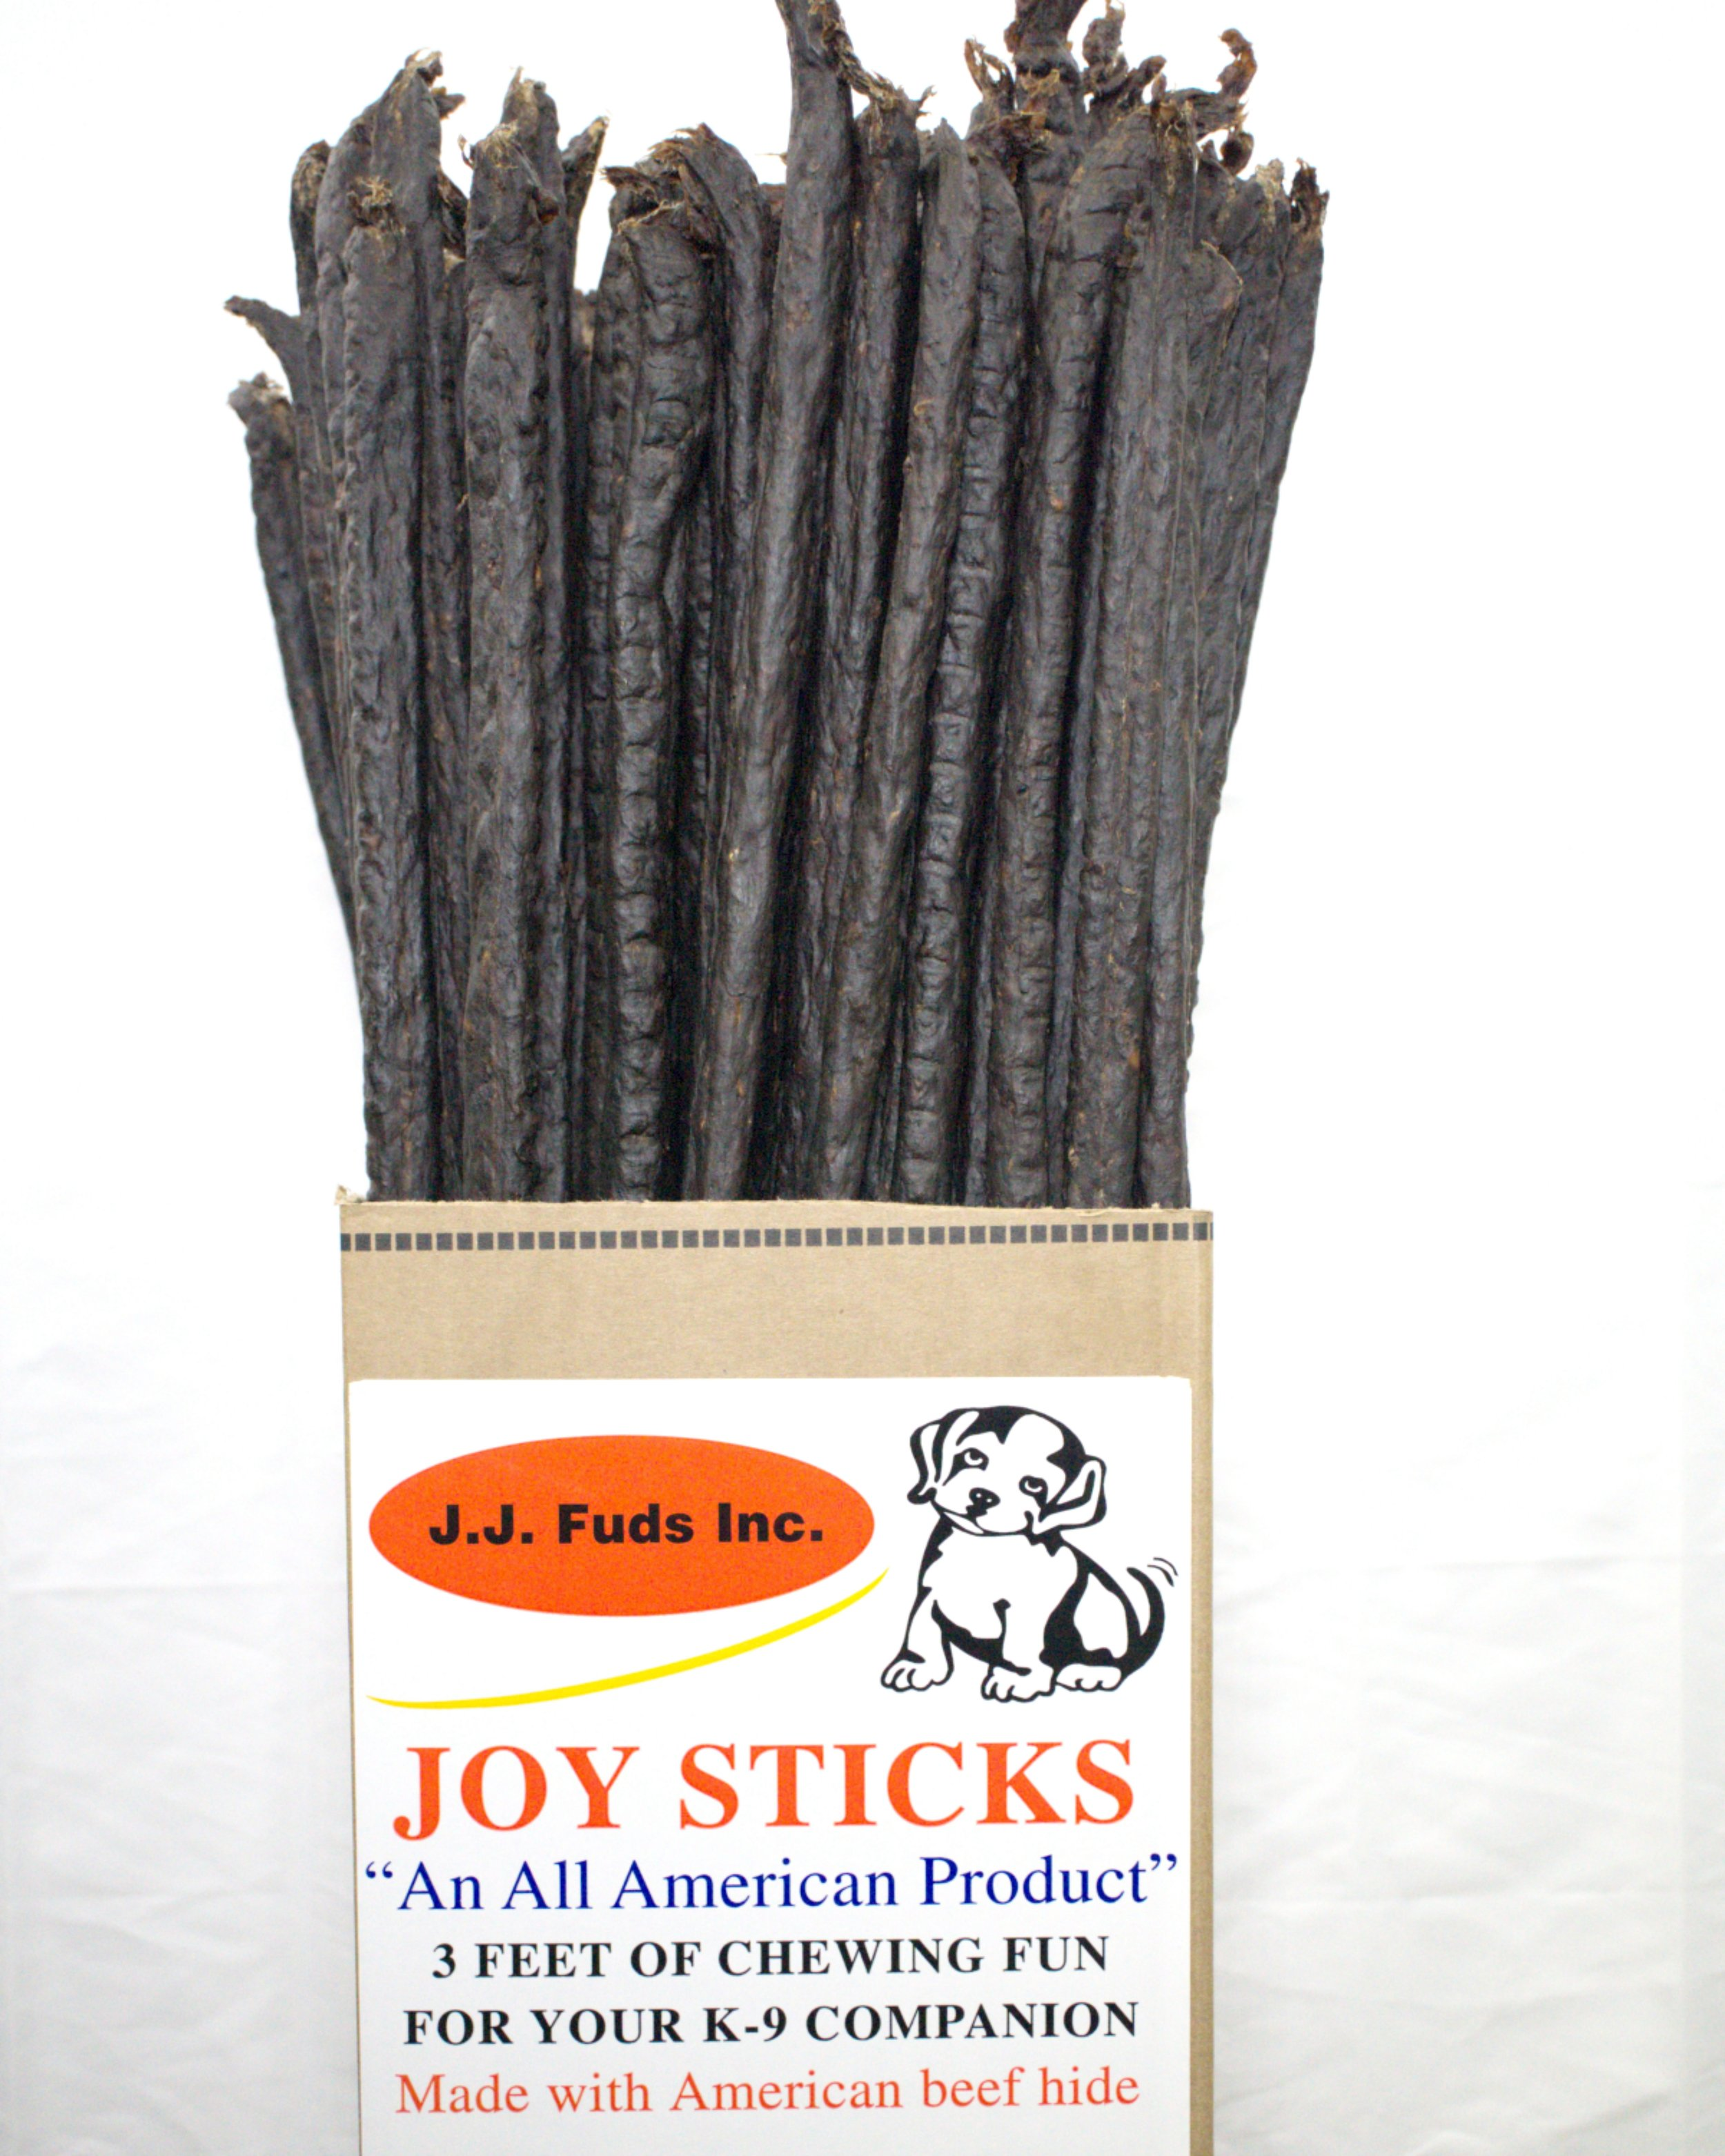 Joy Sticks 10x8.jpg